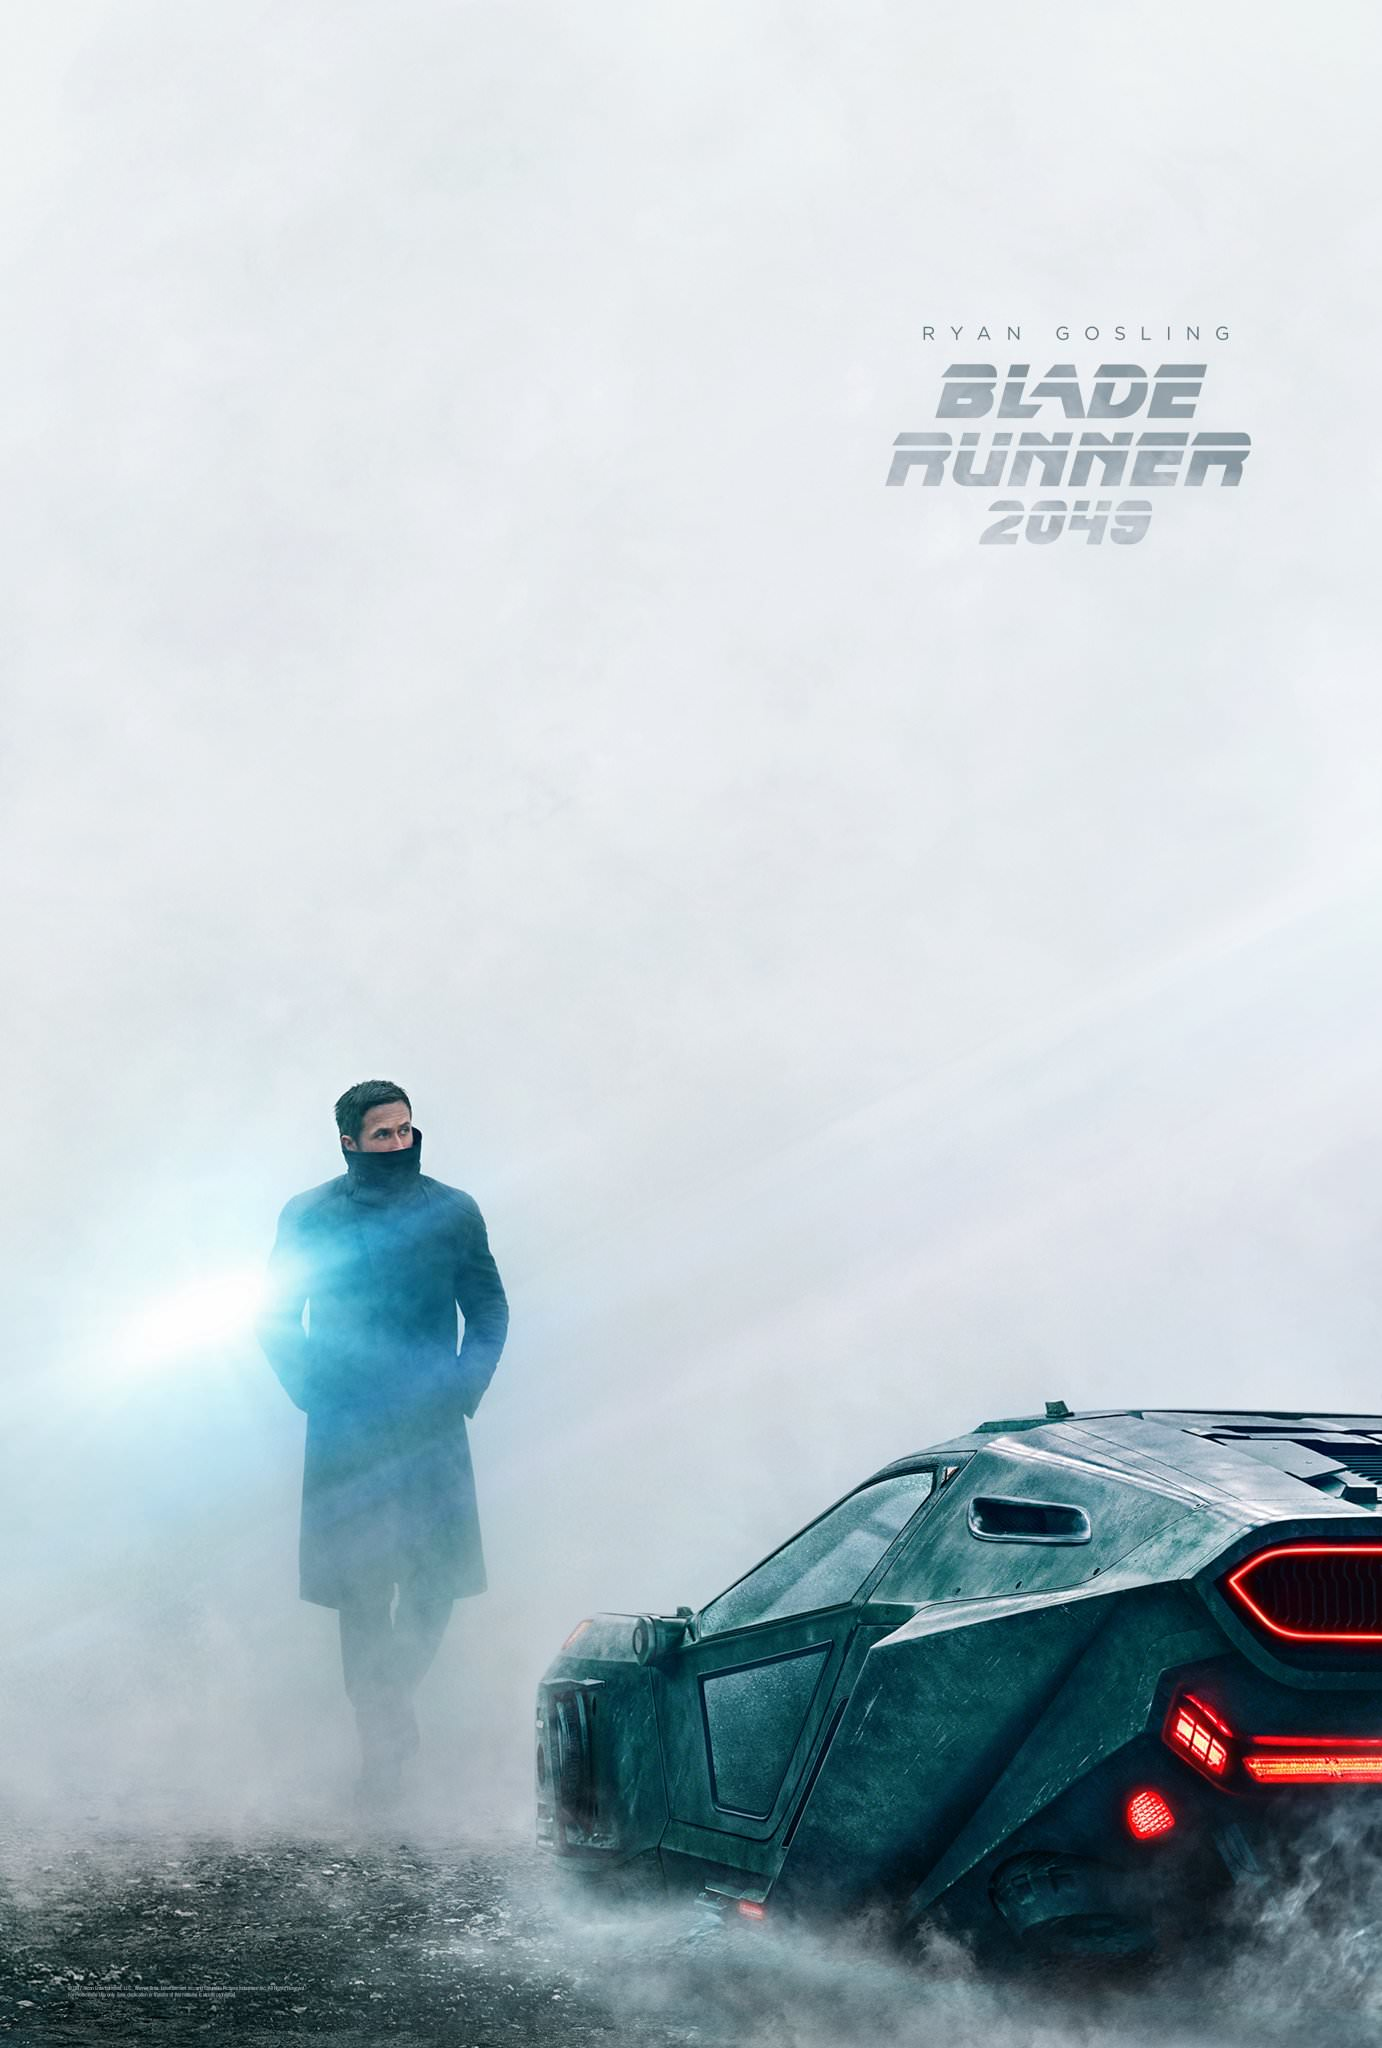 Blog-Mode-And-The-City-Lifestyle-Cinq-Petites-Choses-235-blade-runner-2049